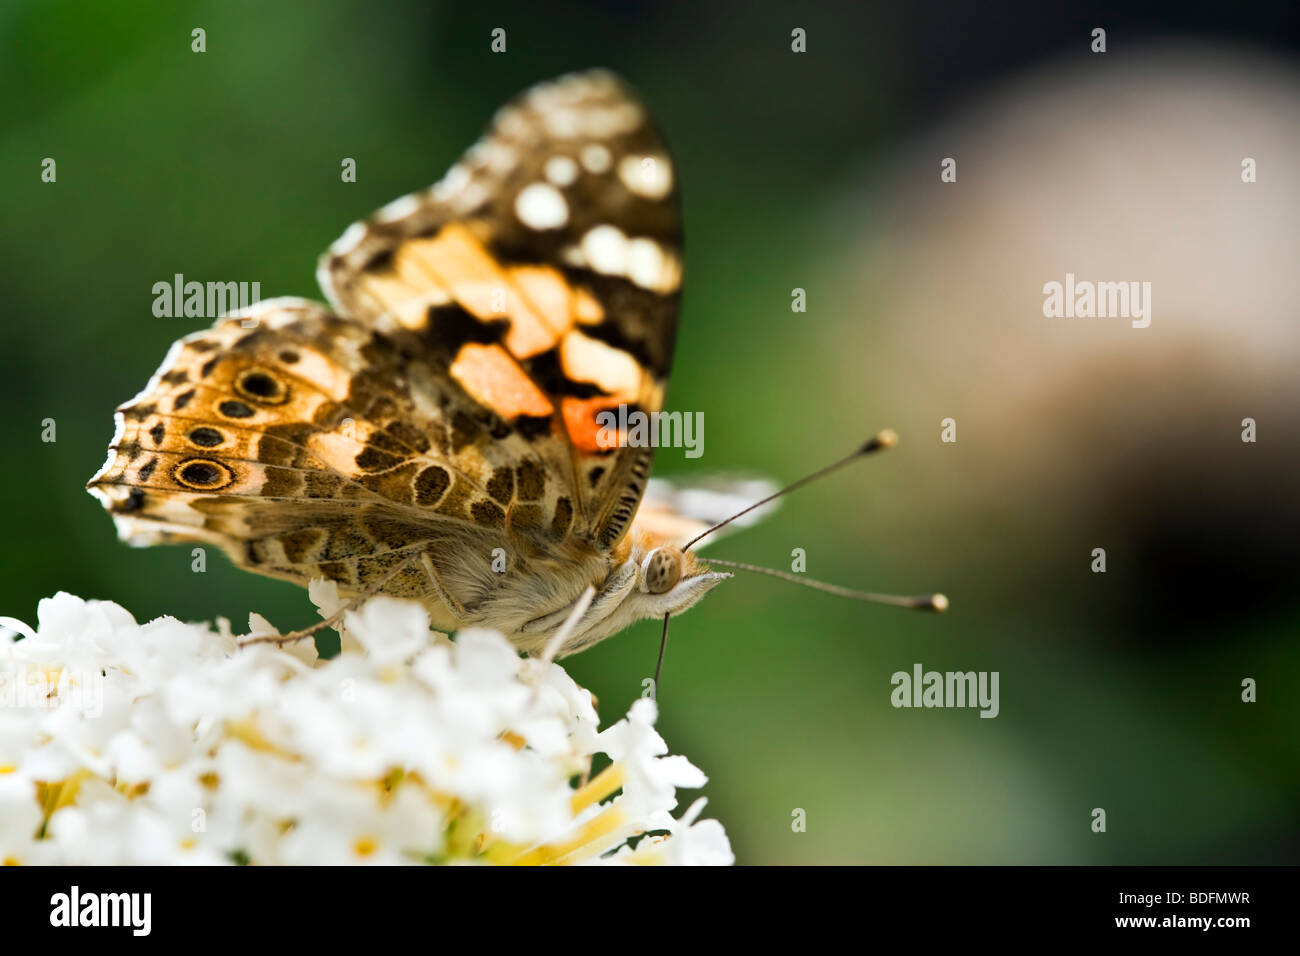 Pianted Lady butterfly sucking nectar from flower close-up Stock Photo